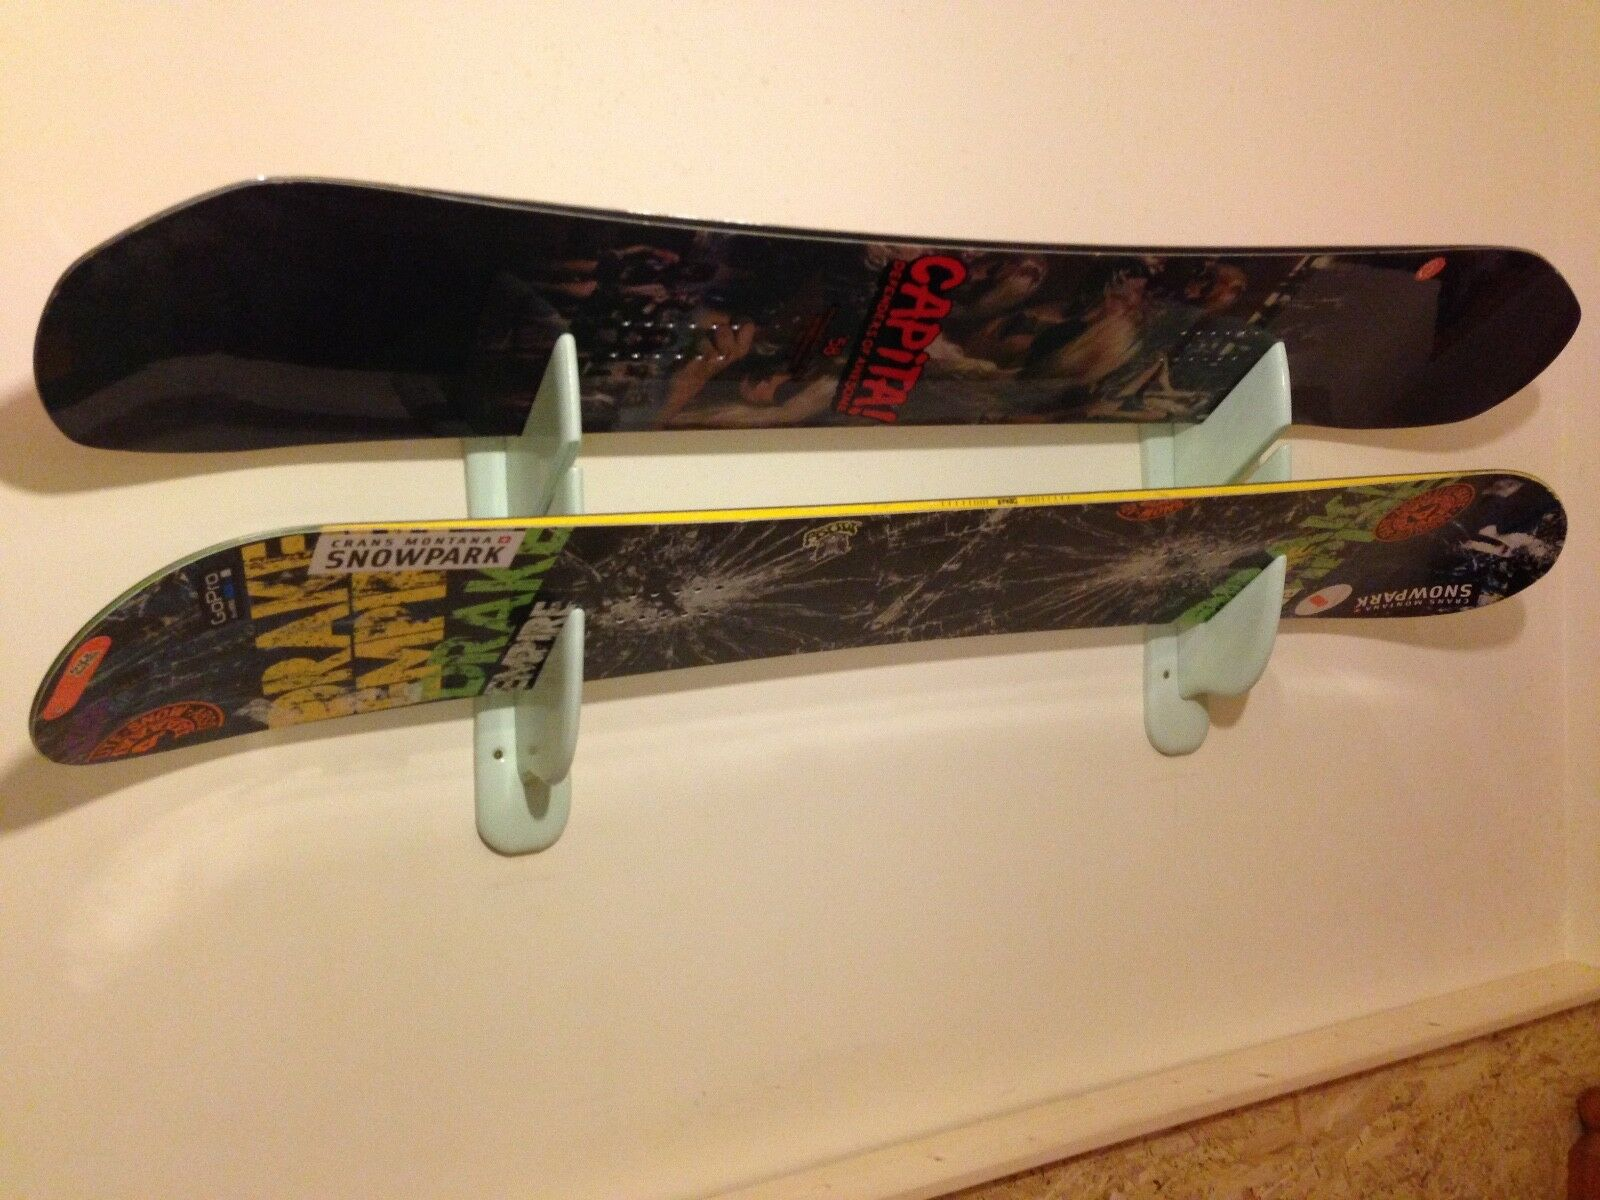 SNOWBOARDSKI LONG BOARDWall Holders  LONELY MOUNTAINS   Display 3